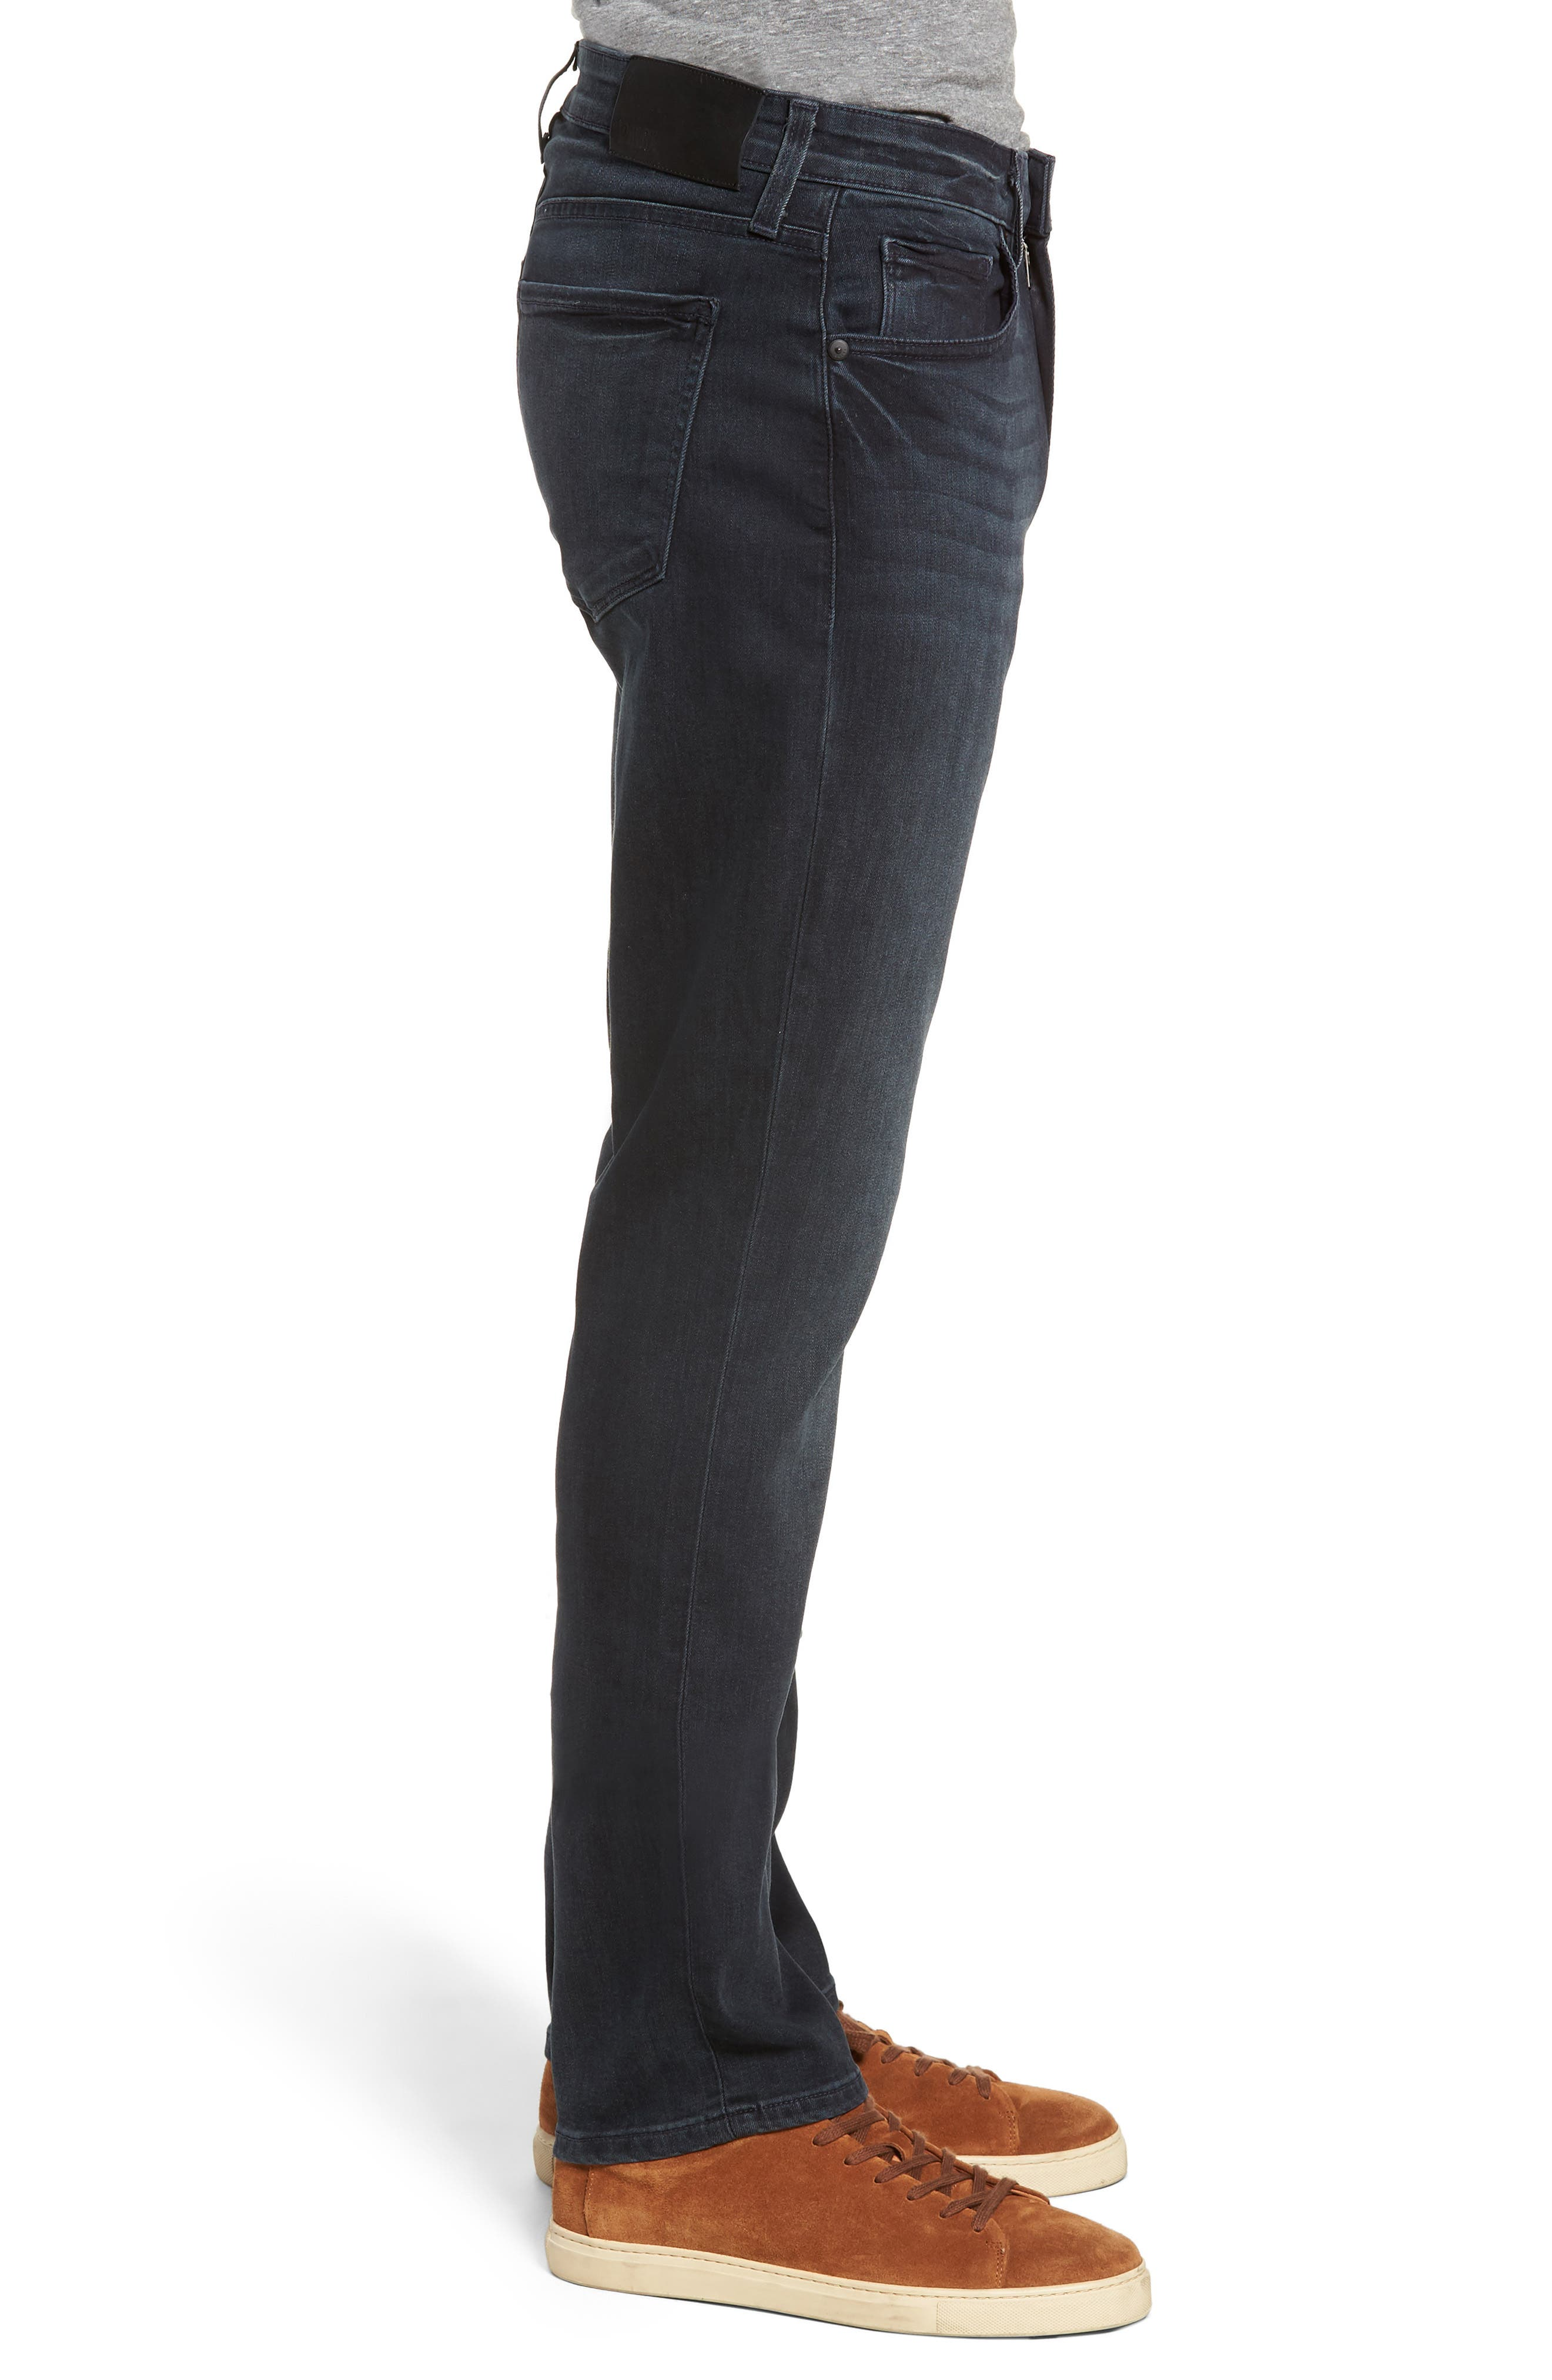 Transcend - Federal Slim Fit Straight Leg Jeans,                             Alternate thumbnail 3, color,                             BECKETT